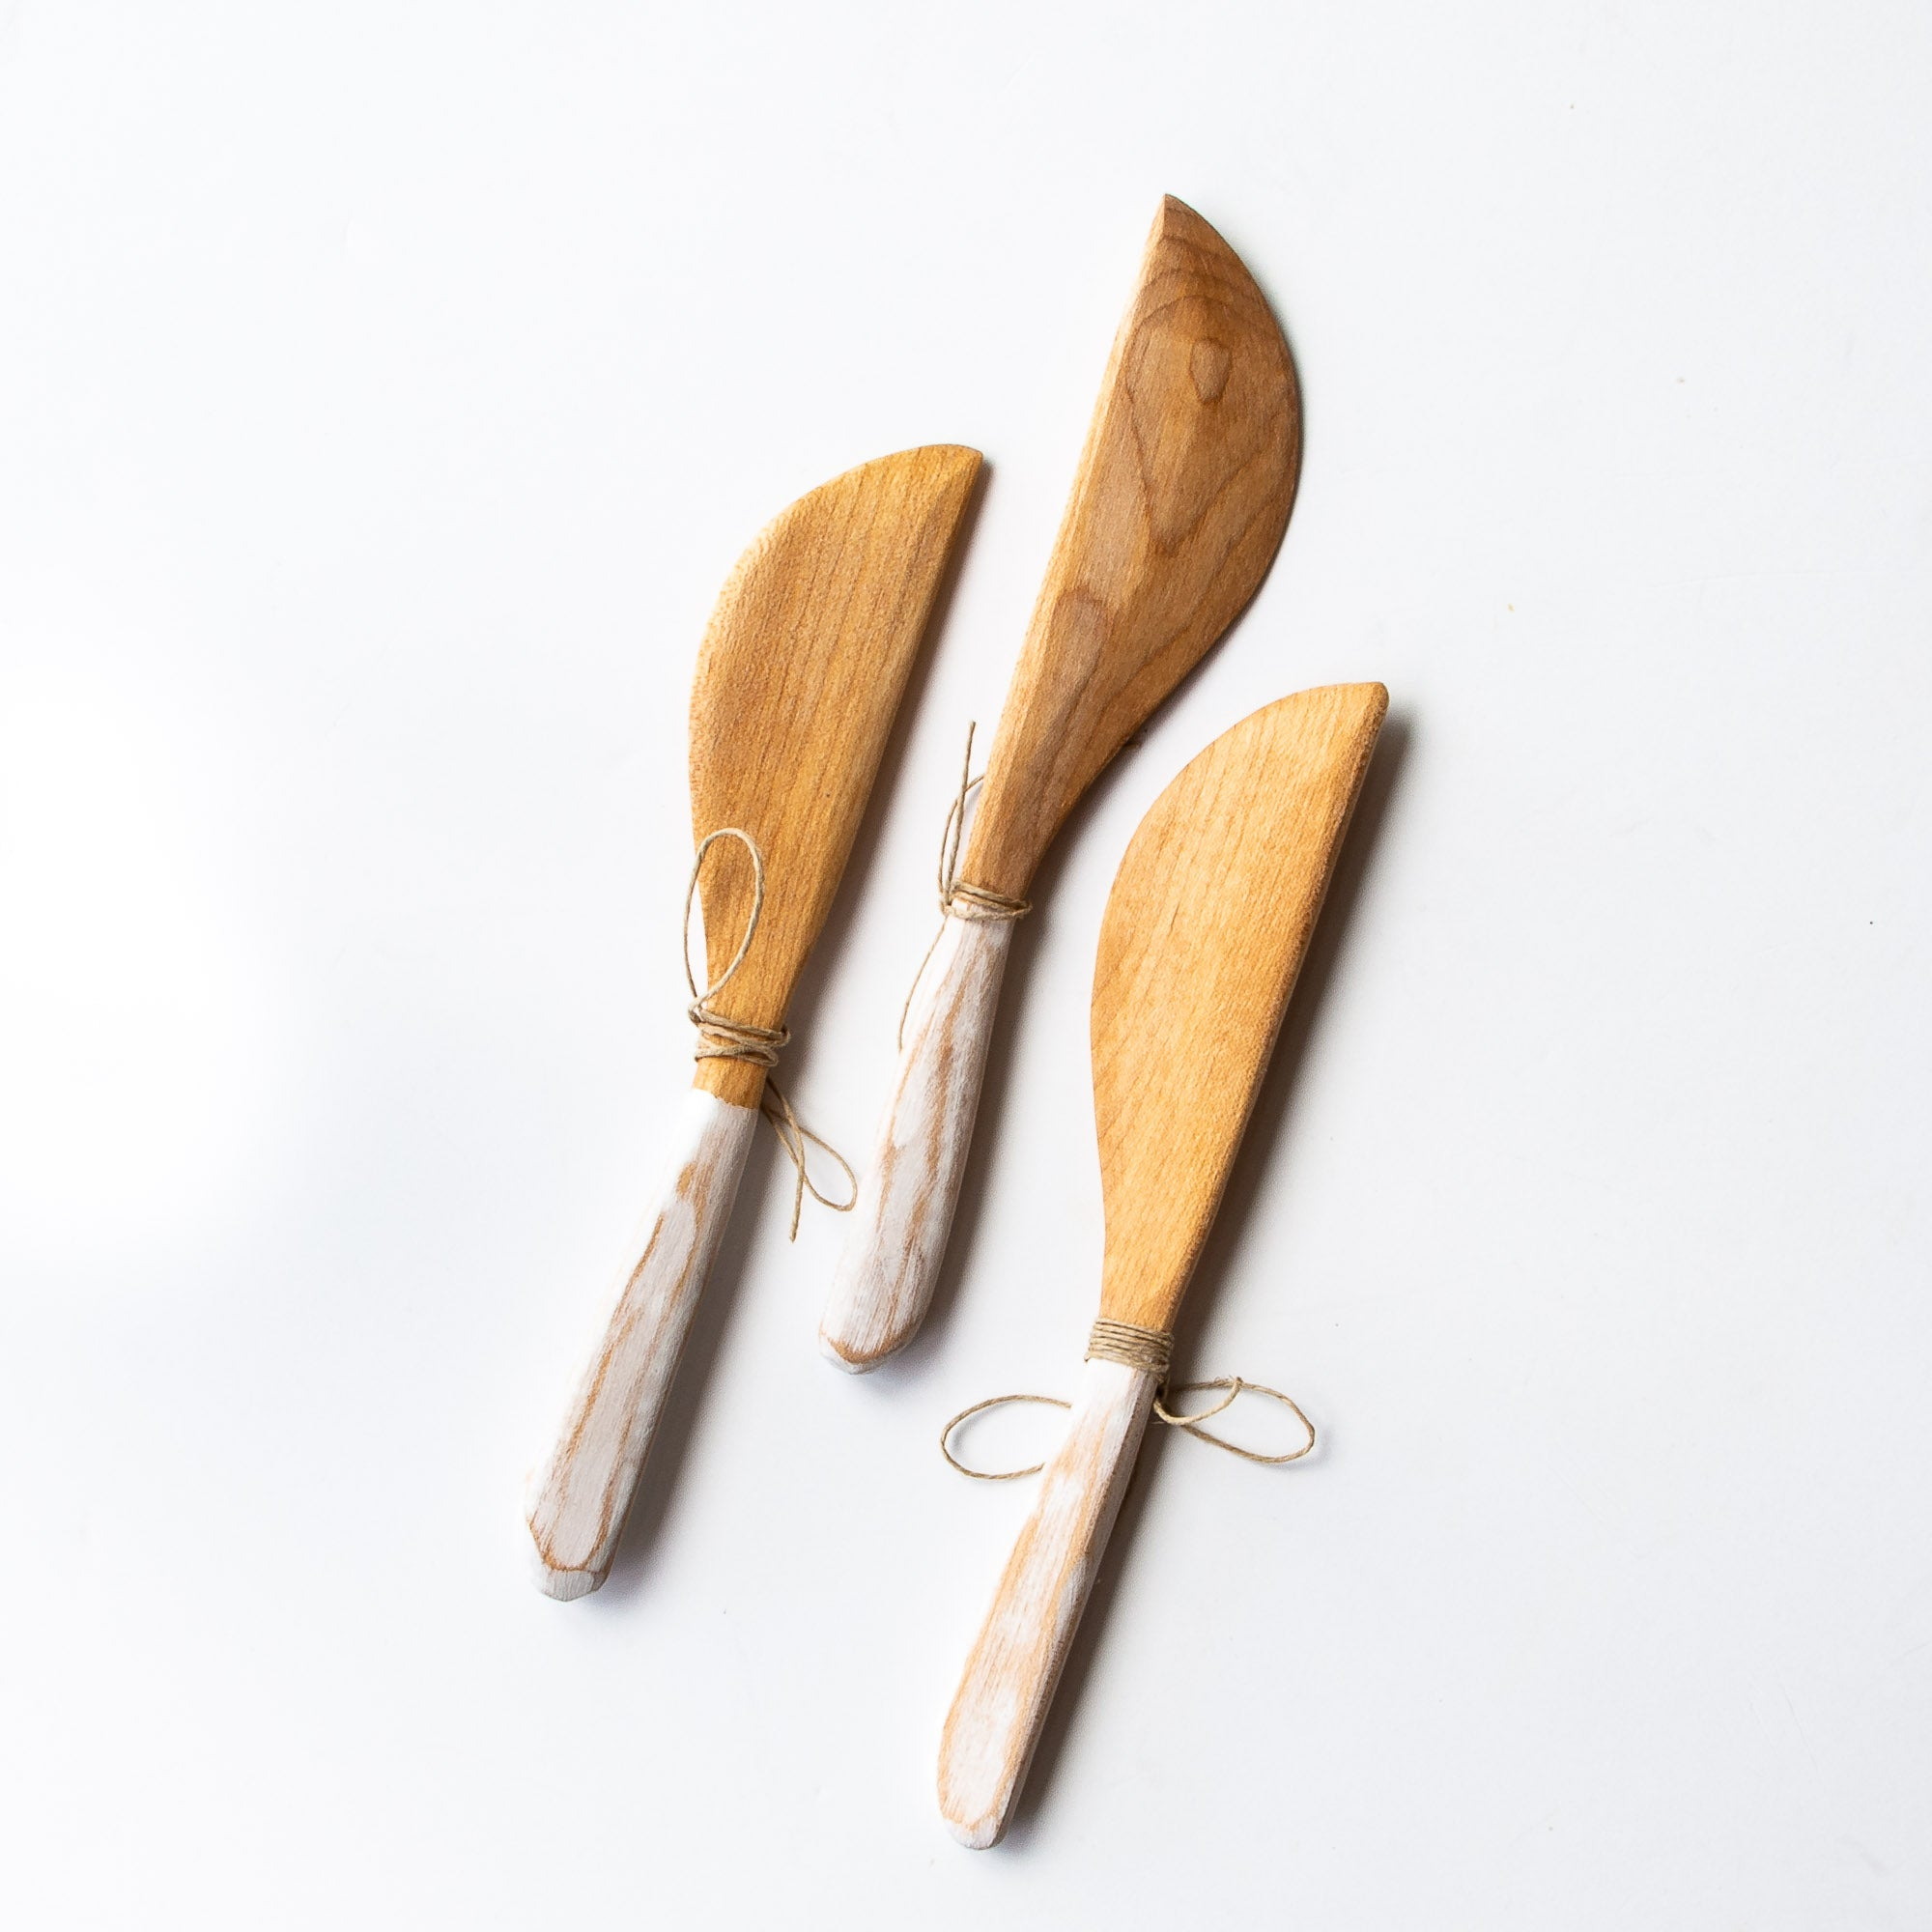 Three Small Reclaimed Wooden Knifes - Handmade in Reclaimed Wood - Sold by Chic & Basta